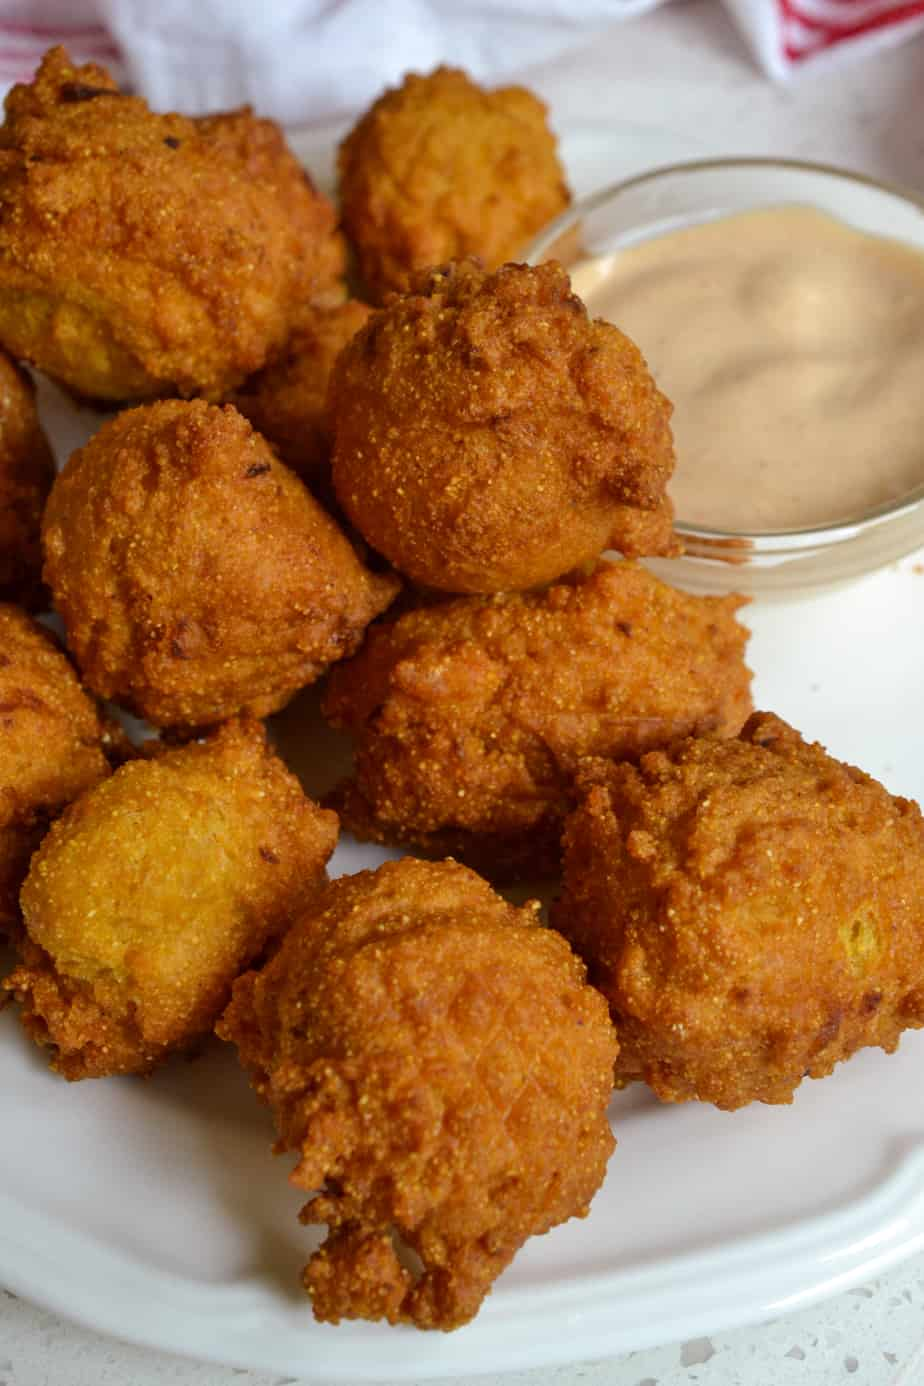 Warm and crispy fried hush puppies with a spicy southern sauce